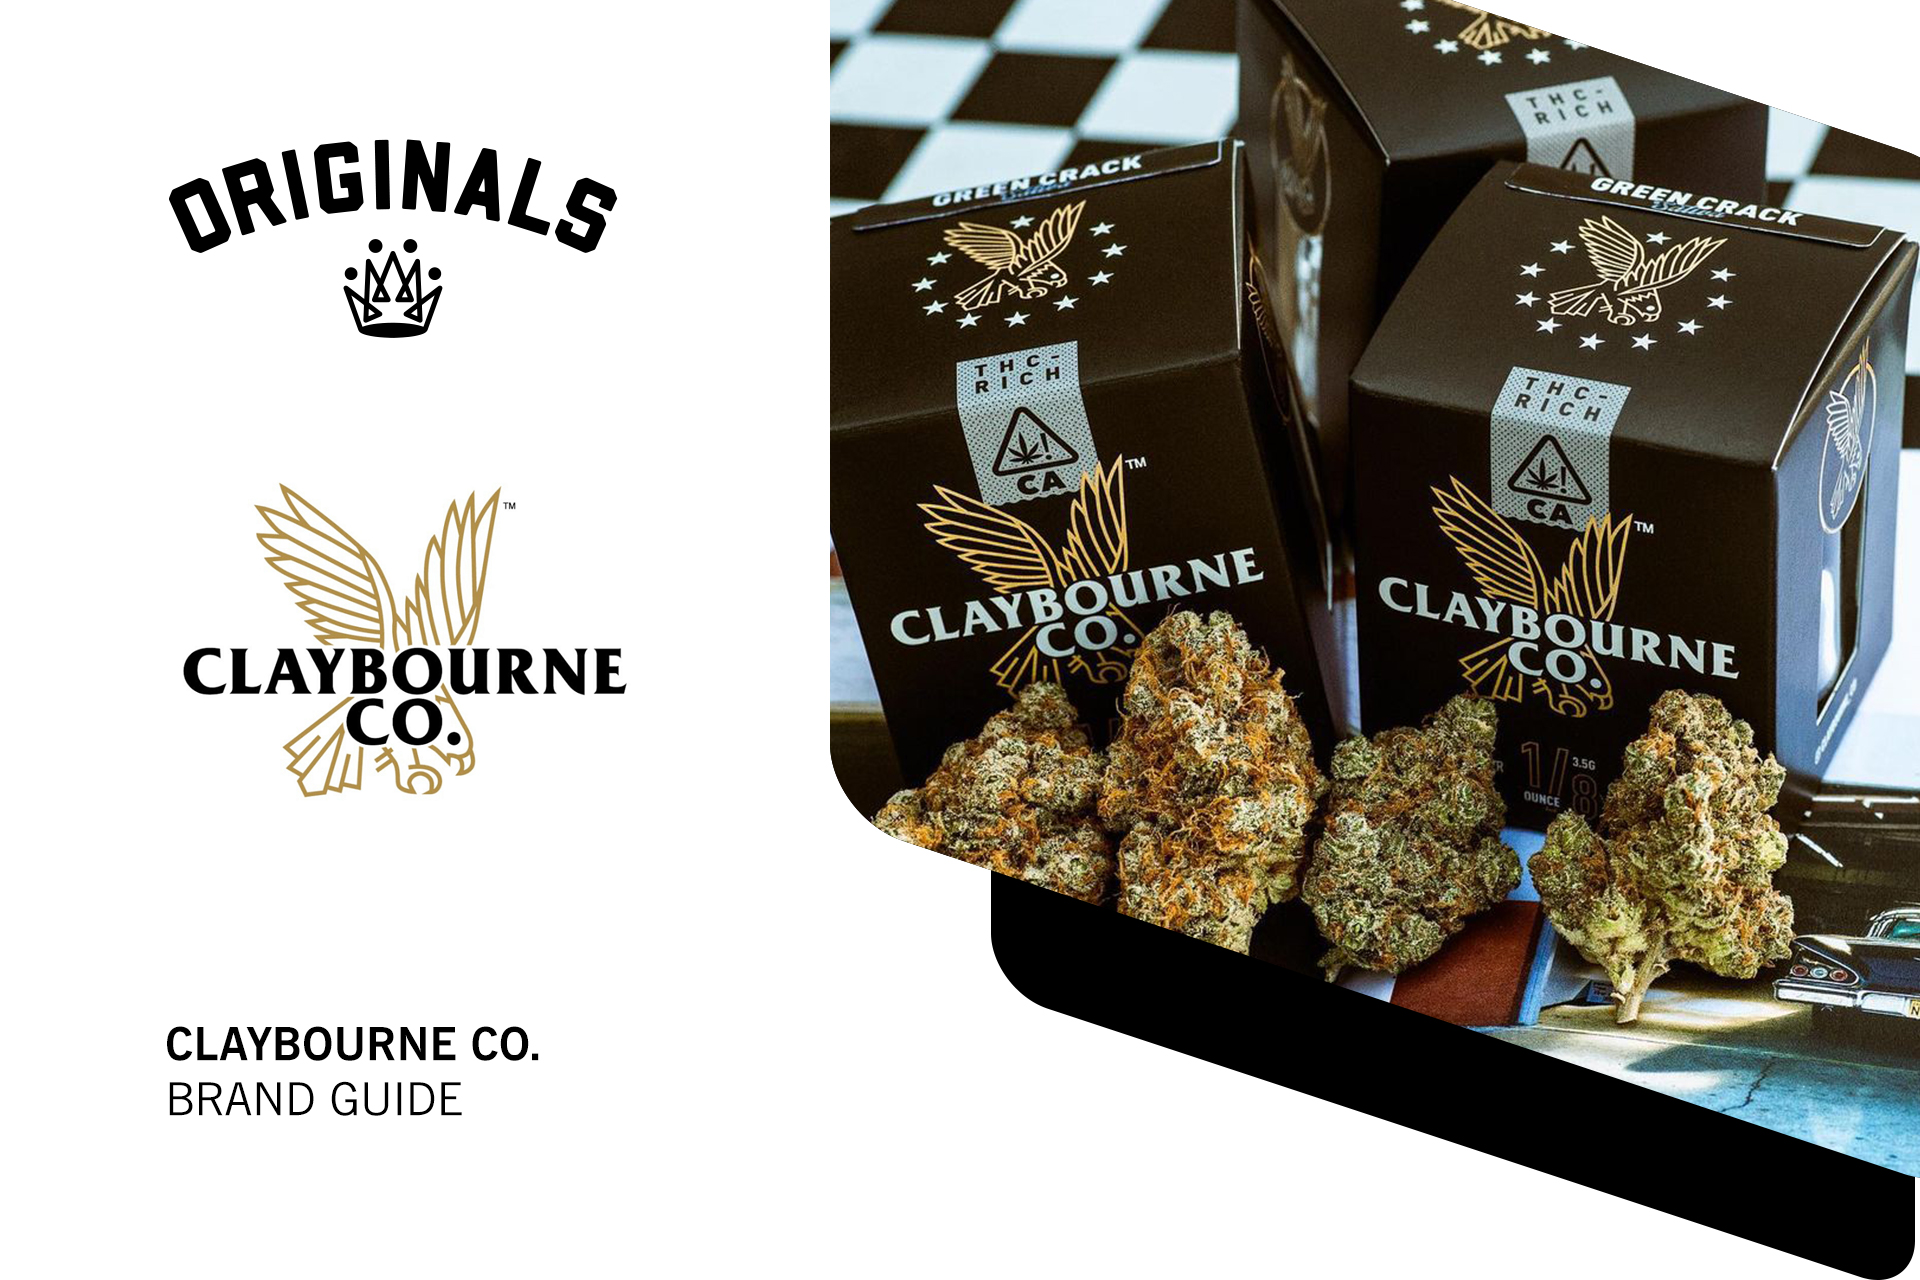 Claybourne Co Brand Guide: High-Octane Cannabis Products At Originals